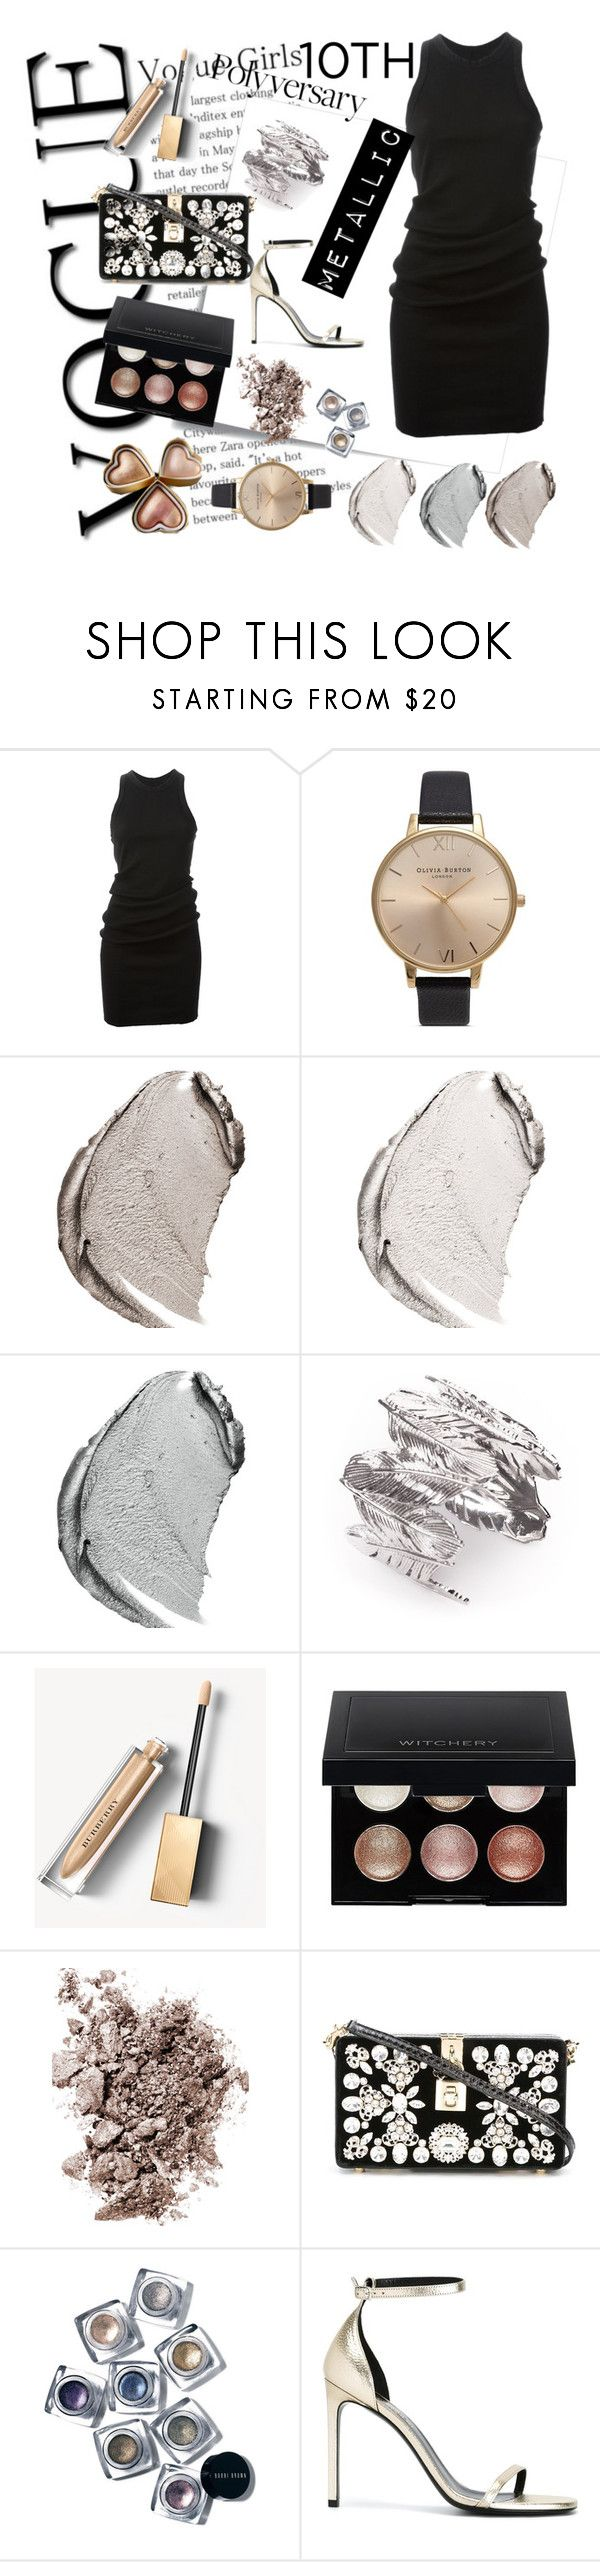 """""""Celebrate Our 10th Polyversary!"""" by r-bye ❤ liked on Polyvore featuring Post-It, DRKSHDW, Olivia Burton, Christian Dior, Joanna Laura Constantine, Burberry, Witchery, Yves Saint Laurent, Dolce&Gabbana and Bobbi Brown Cosmetics"""